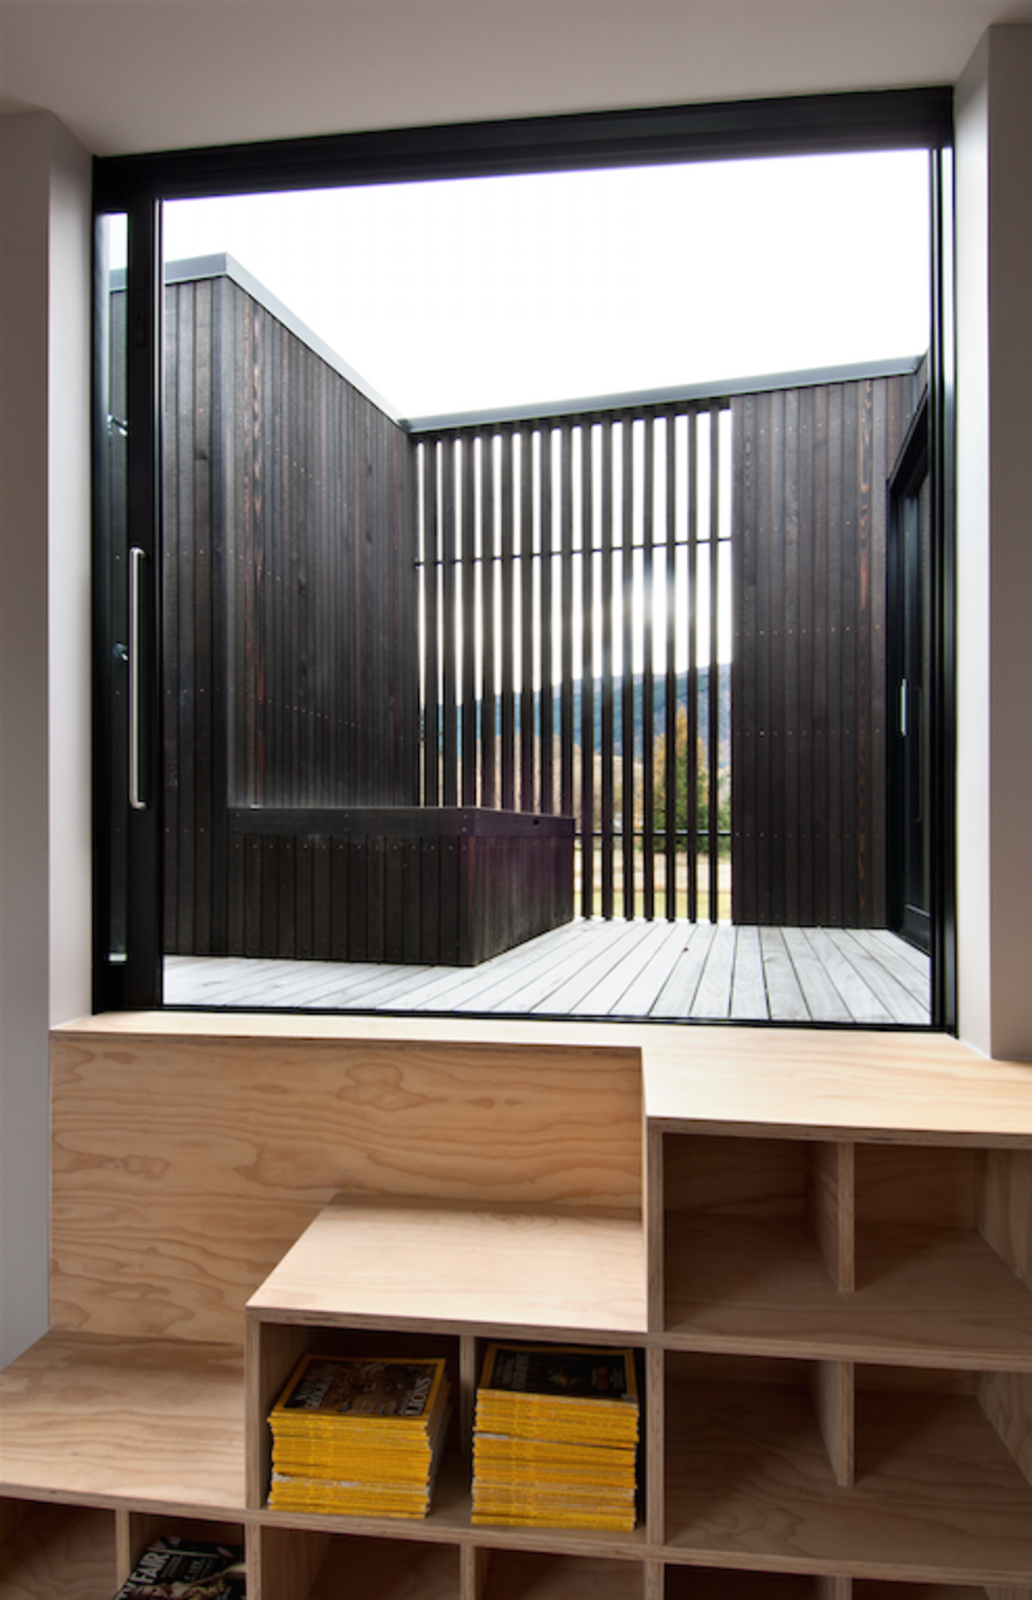 """A clever combination bookshelf and staircase in the children's bedroom leads to the interior """"star-gazing"""" deck, which is invisible from the ground, and contains an open-air bathtub and a sauna. It is also accessible from an adjacent guest bedroom.  """"The house is not huge but uses comparative spaces to create different experiences — it's also about enjoying life and not being overly serious, hence these perceived 'follies' such as the deck. Those non-traditional elements have given the house a different flavor,"""" says Cooke.  190+ Best Modern Staircase Ideas from This Kid-Friendly Home is Full of Surprises"""